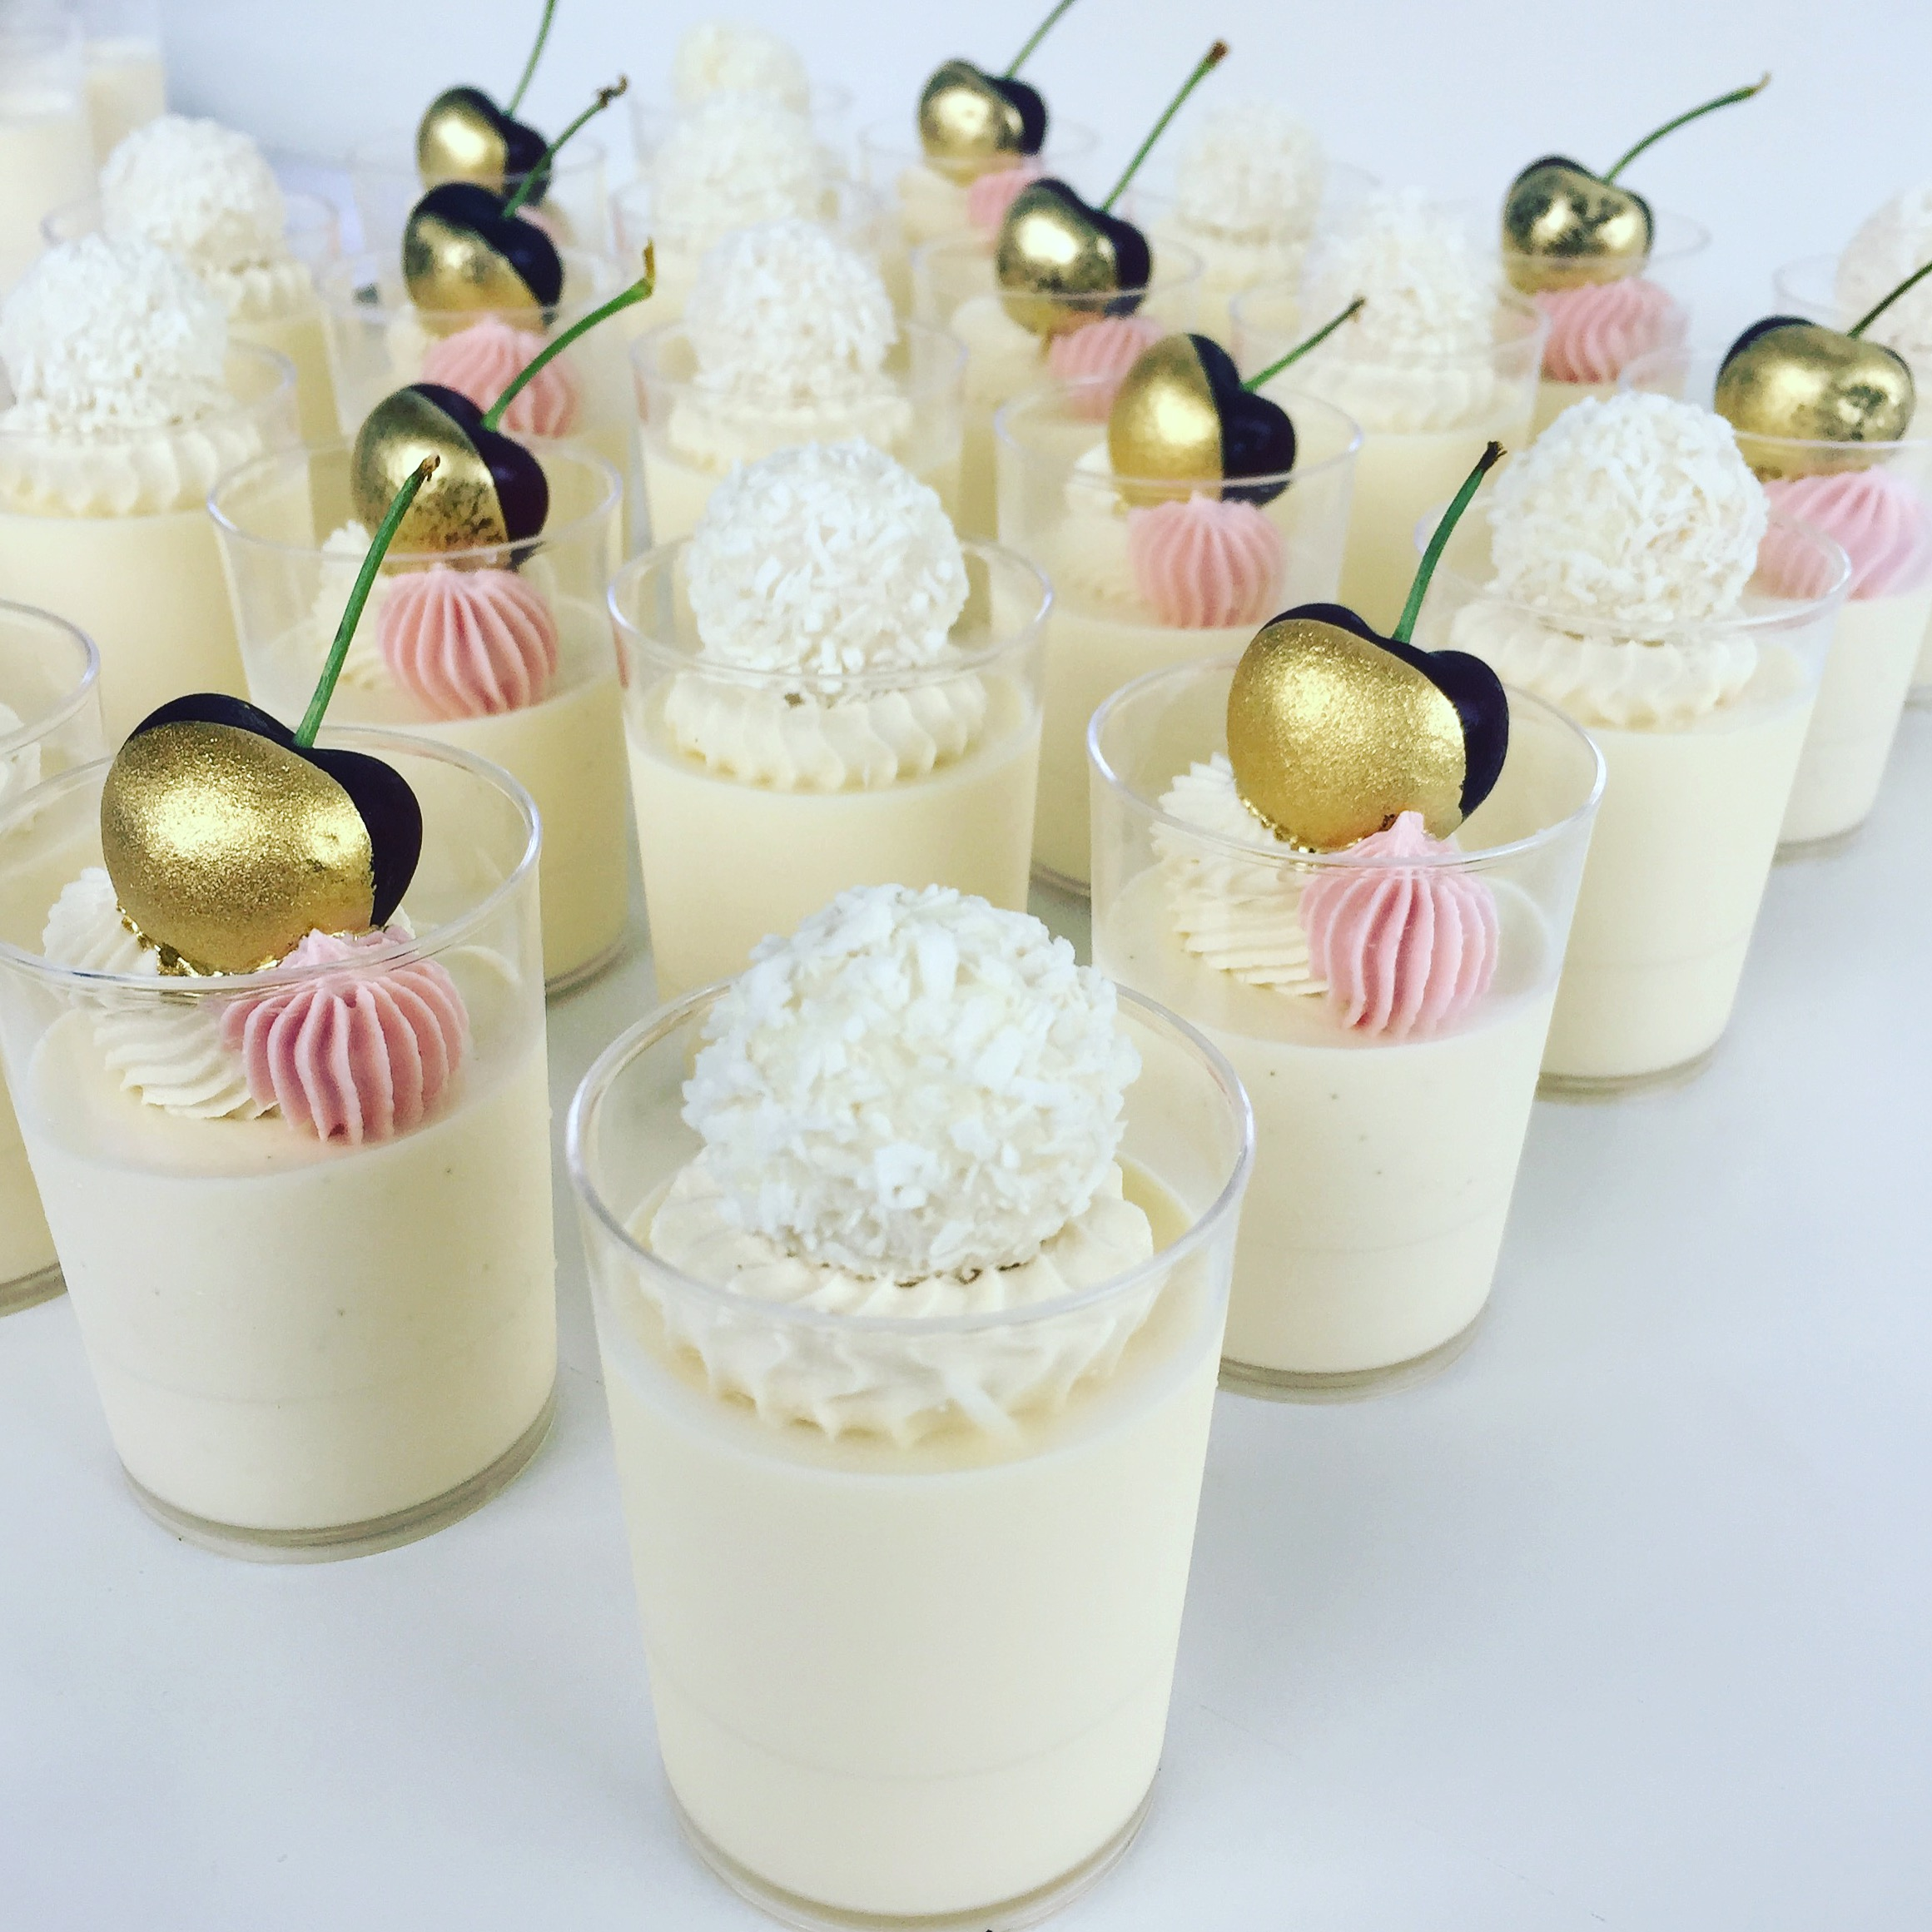 Rafaello Mousse & Mini Panna Cotta